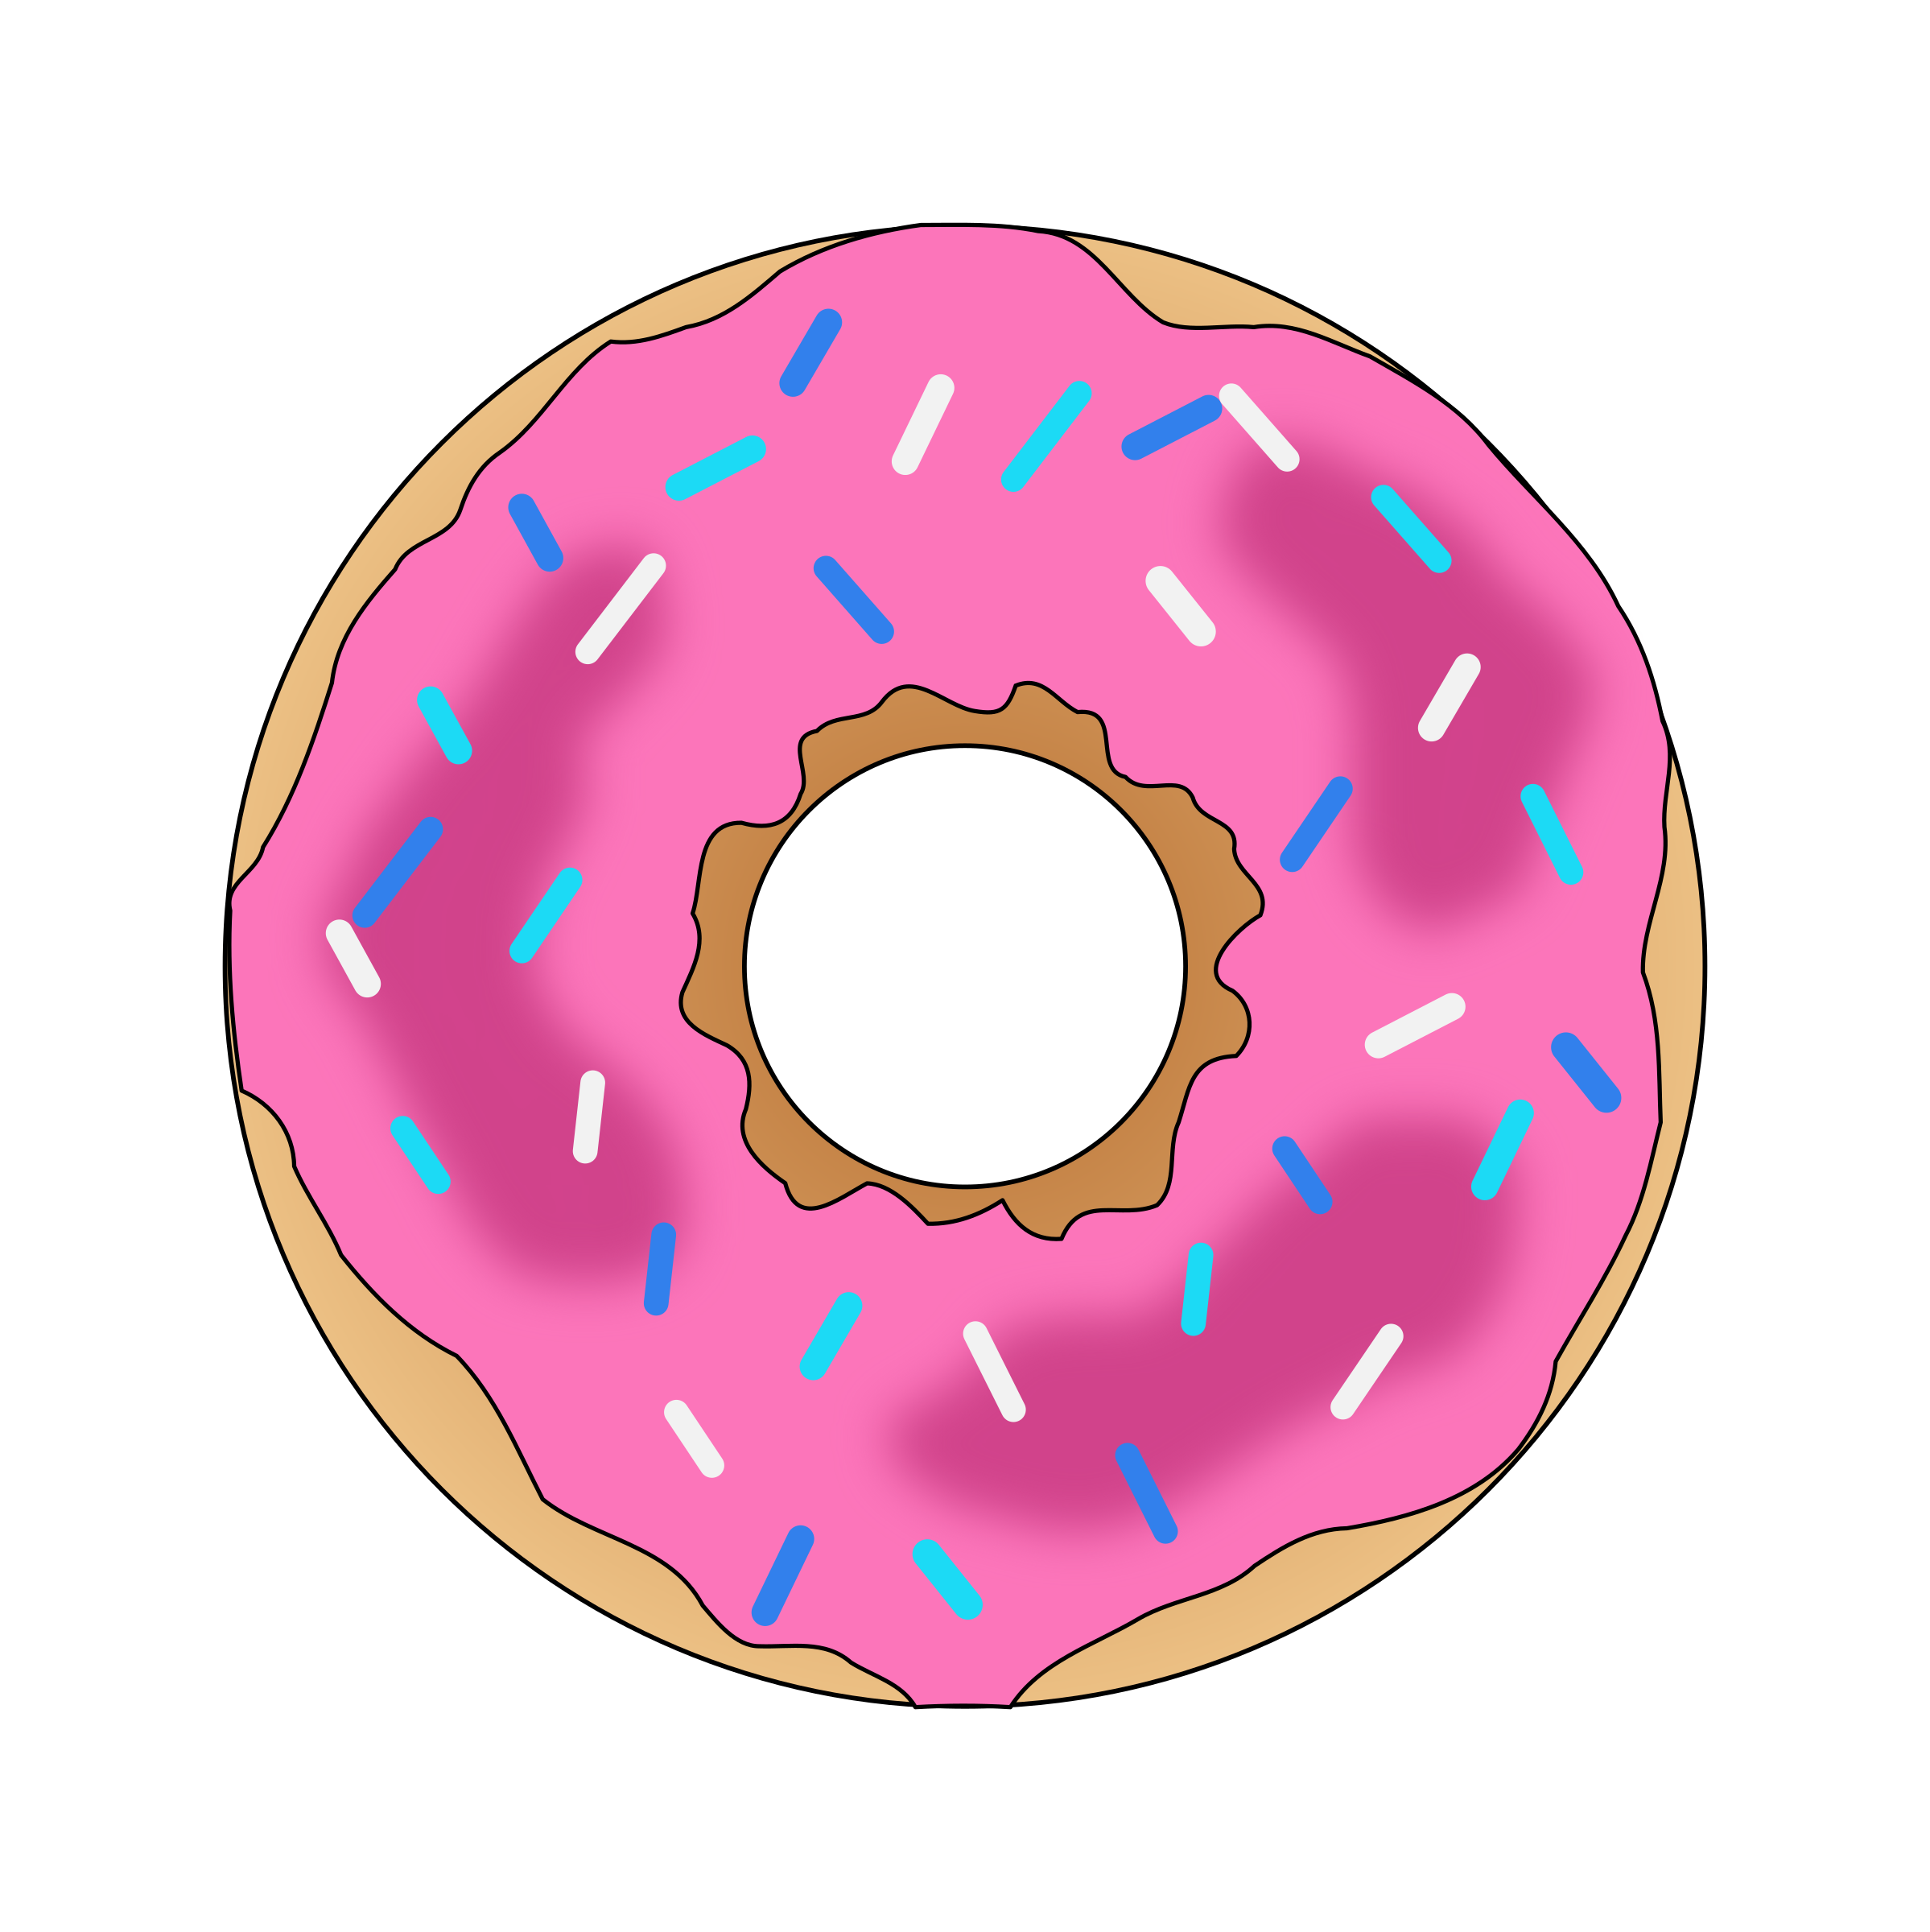 Youtube clipart pink. Heart donut free on